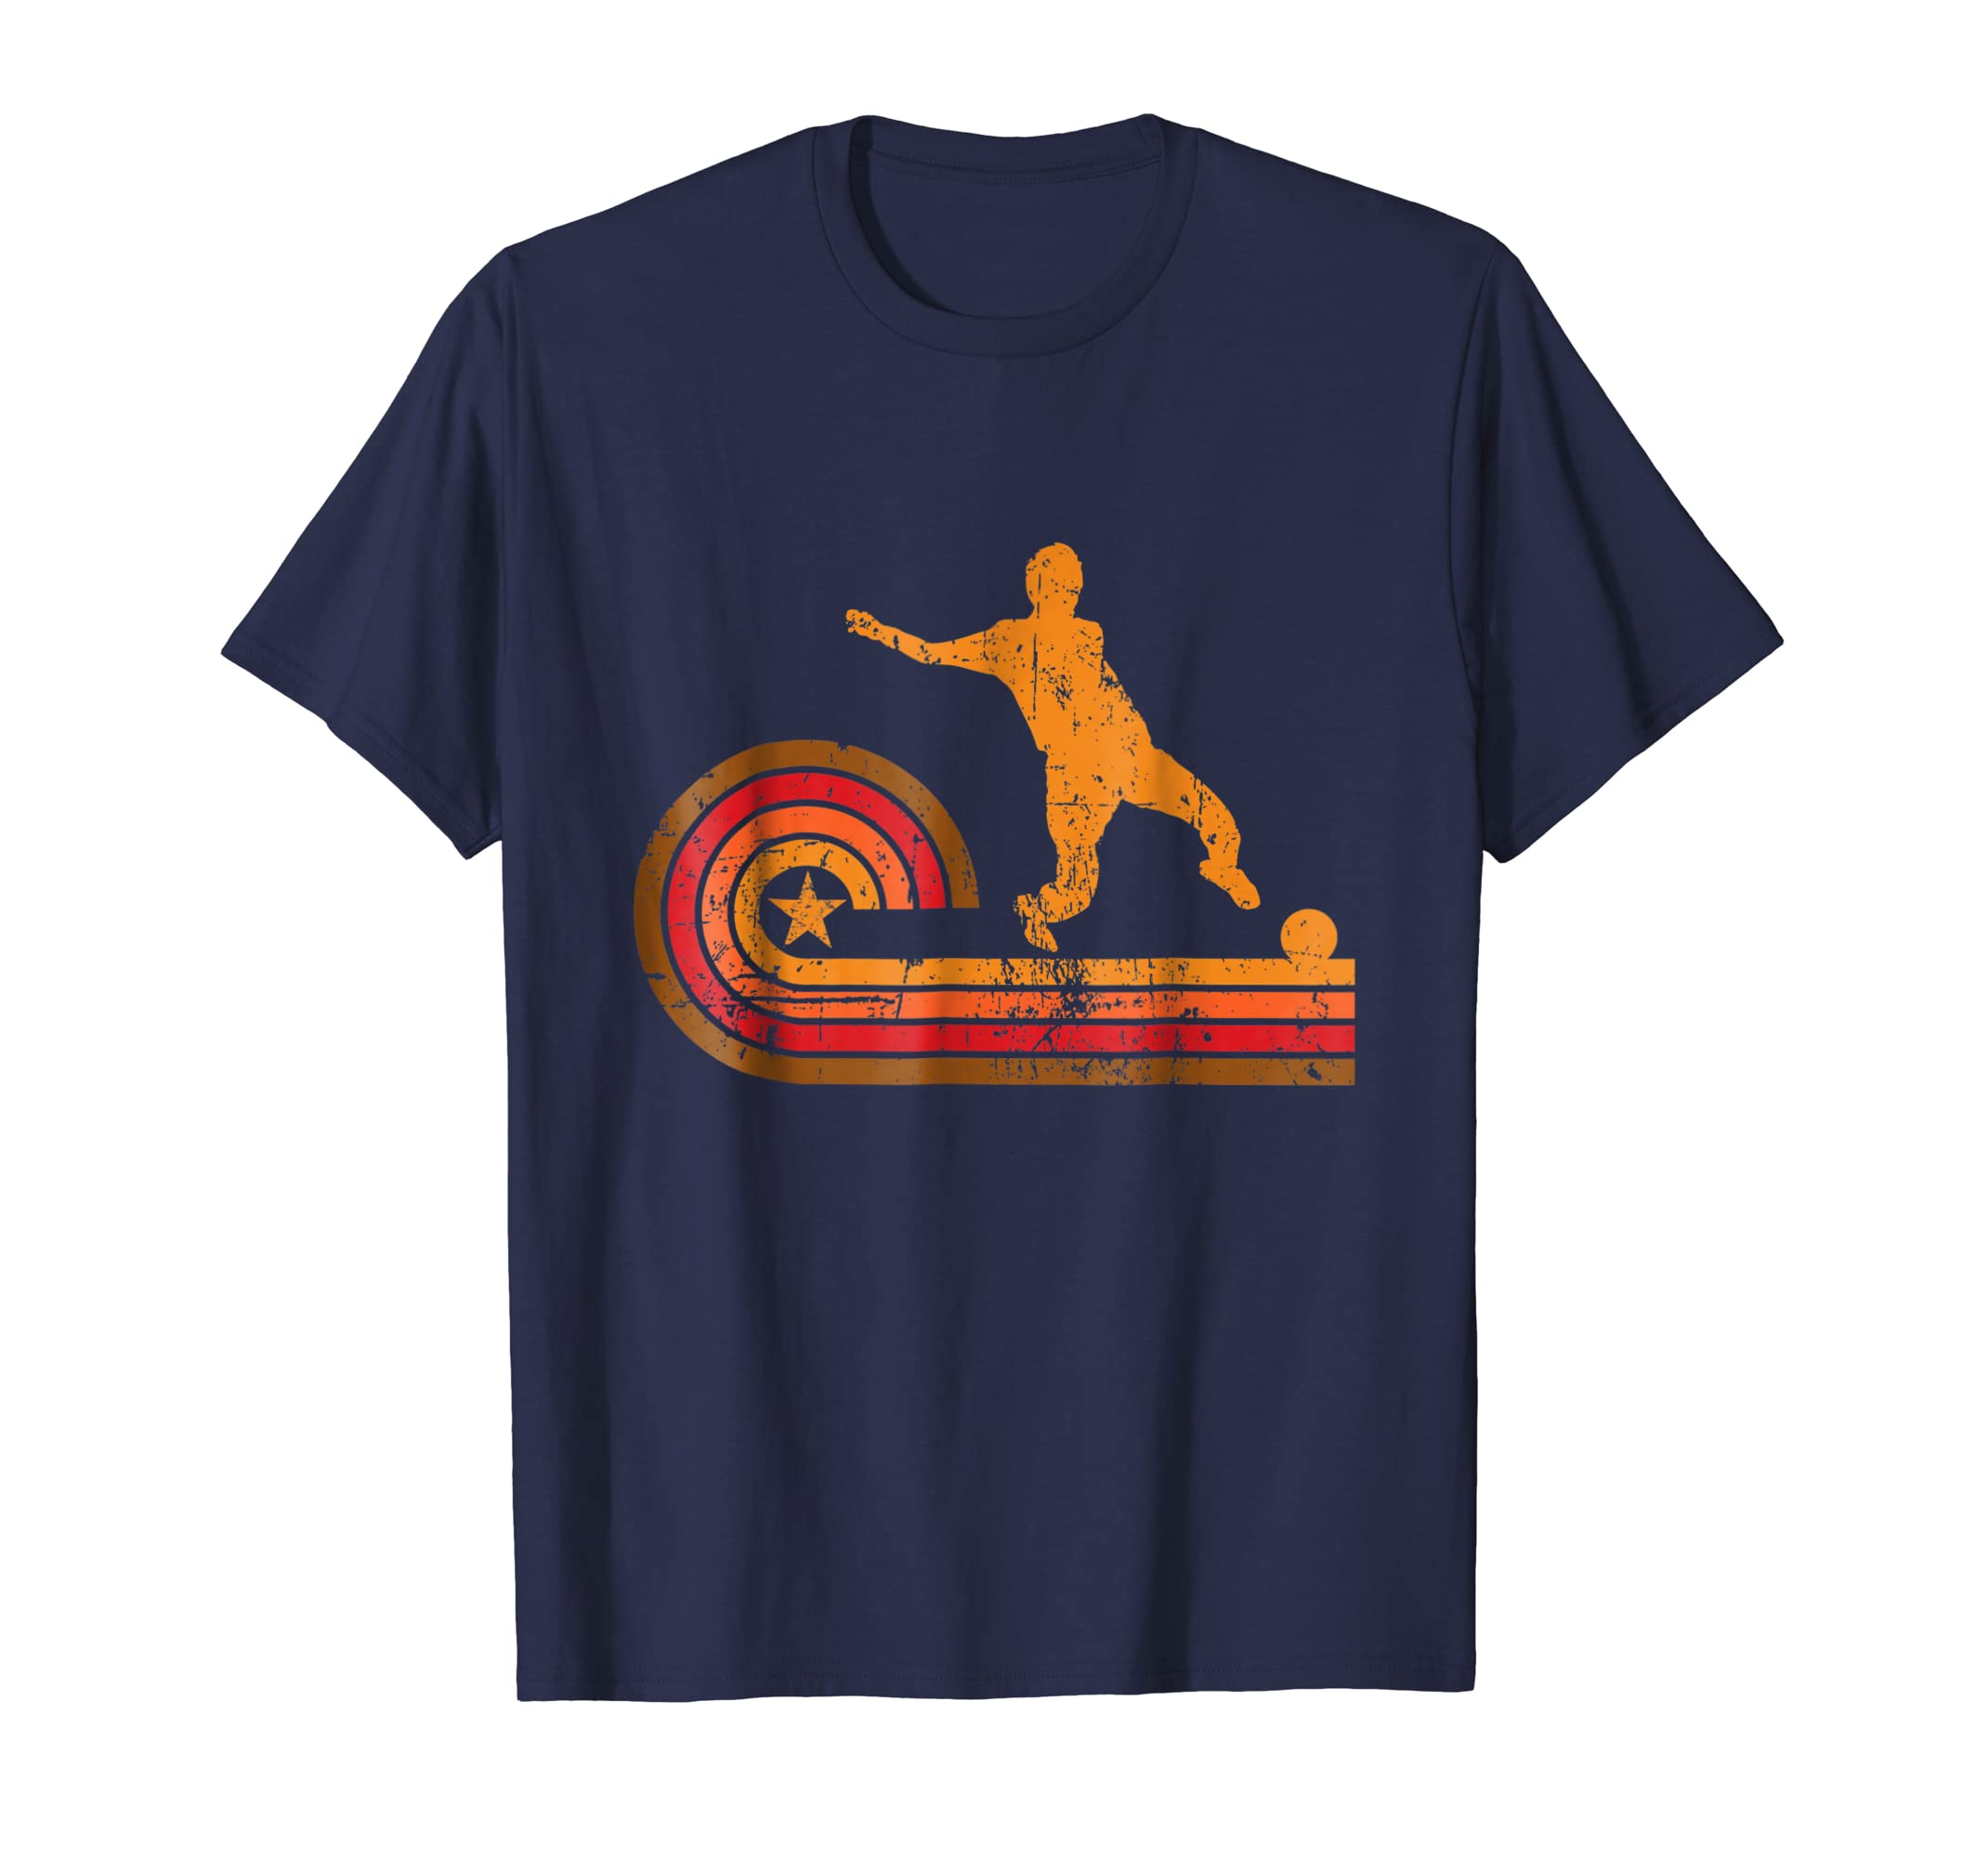 1970's Retro Style Soccer Player Silhouette Sports T Shirt-azvn